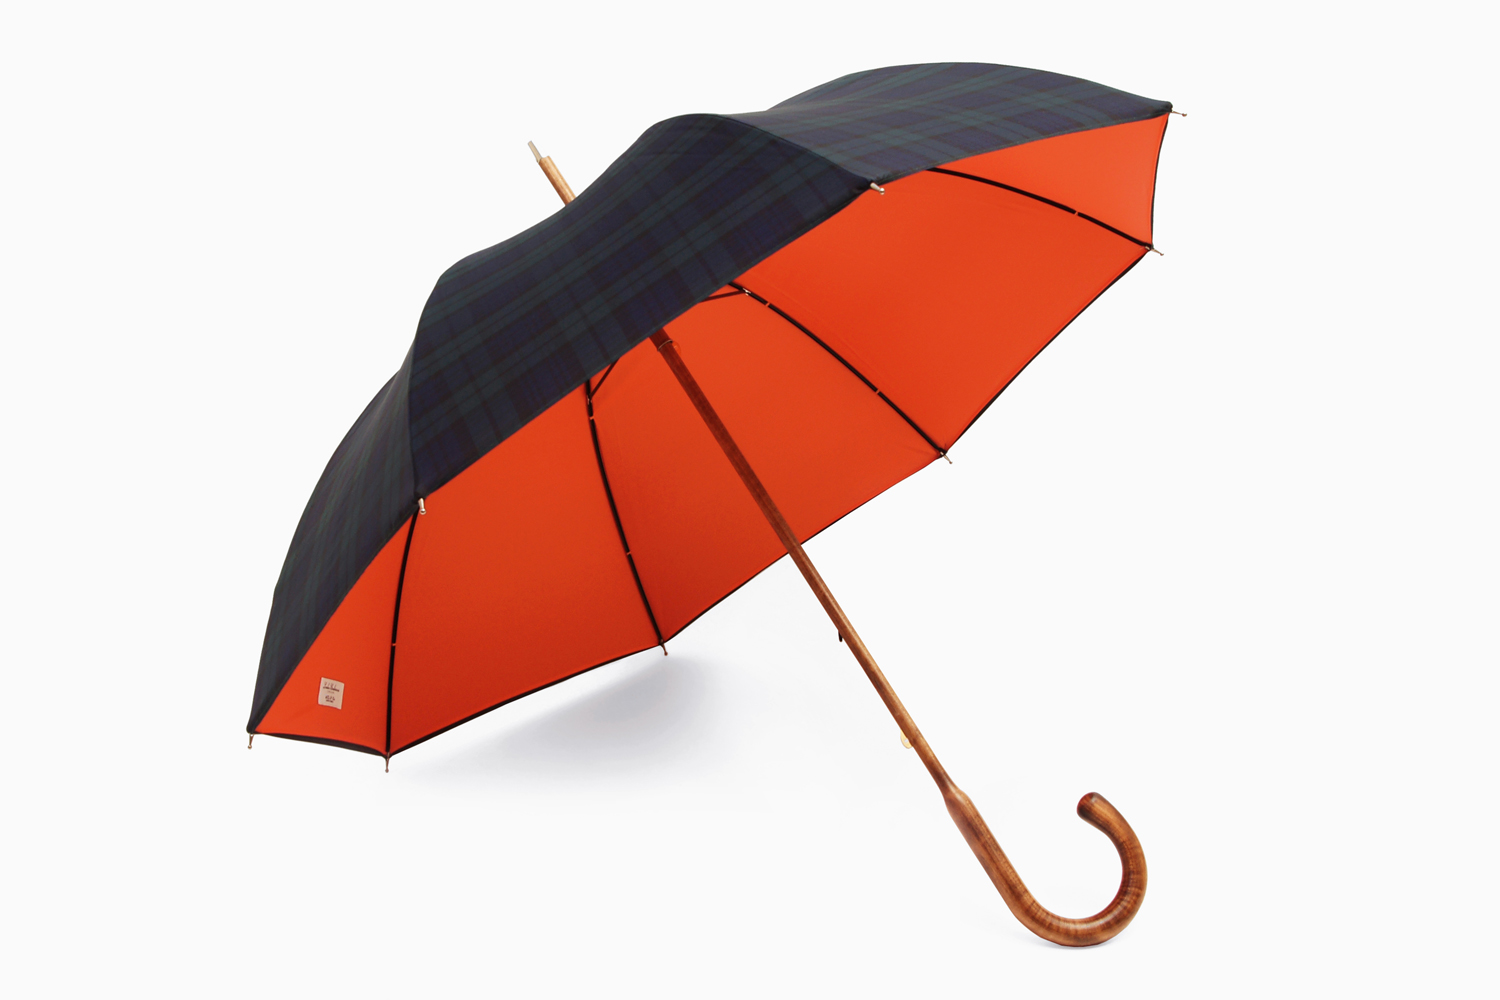 A Continuous Lean x London Undercover Umbrella